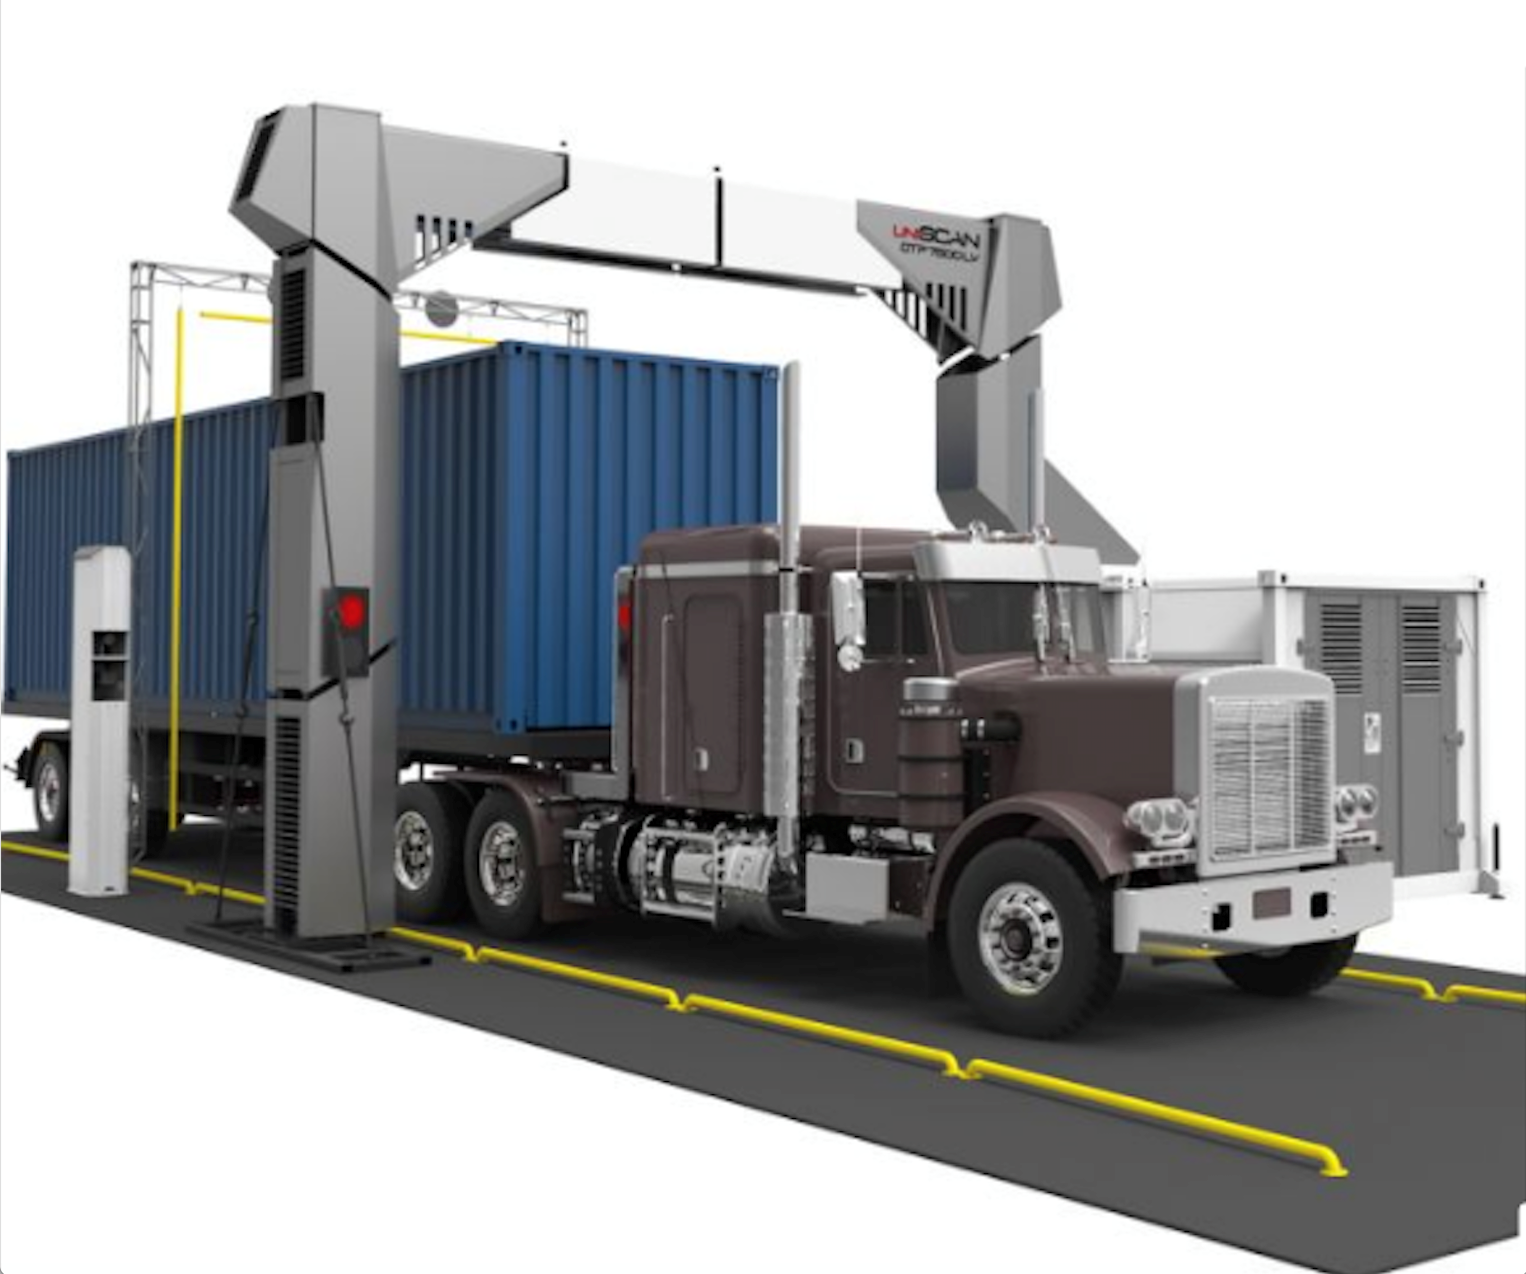 massive truck based x ray system - HD 1200×1021